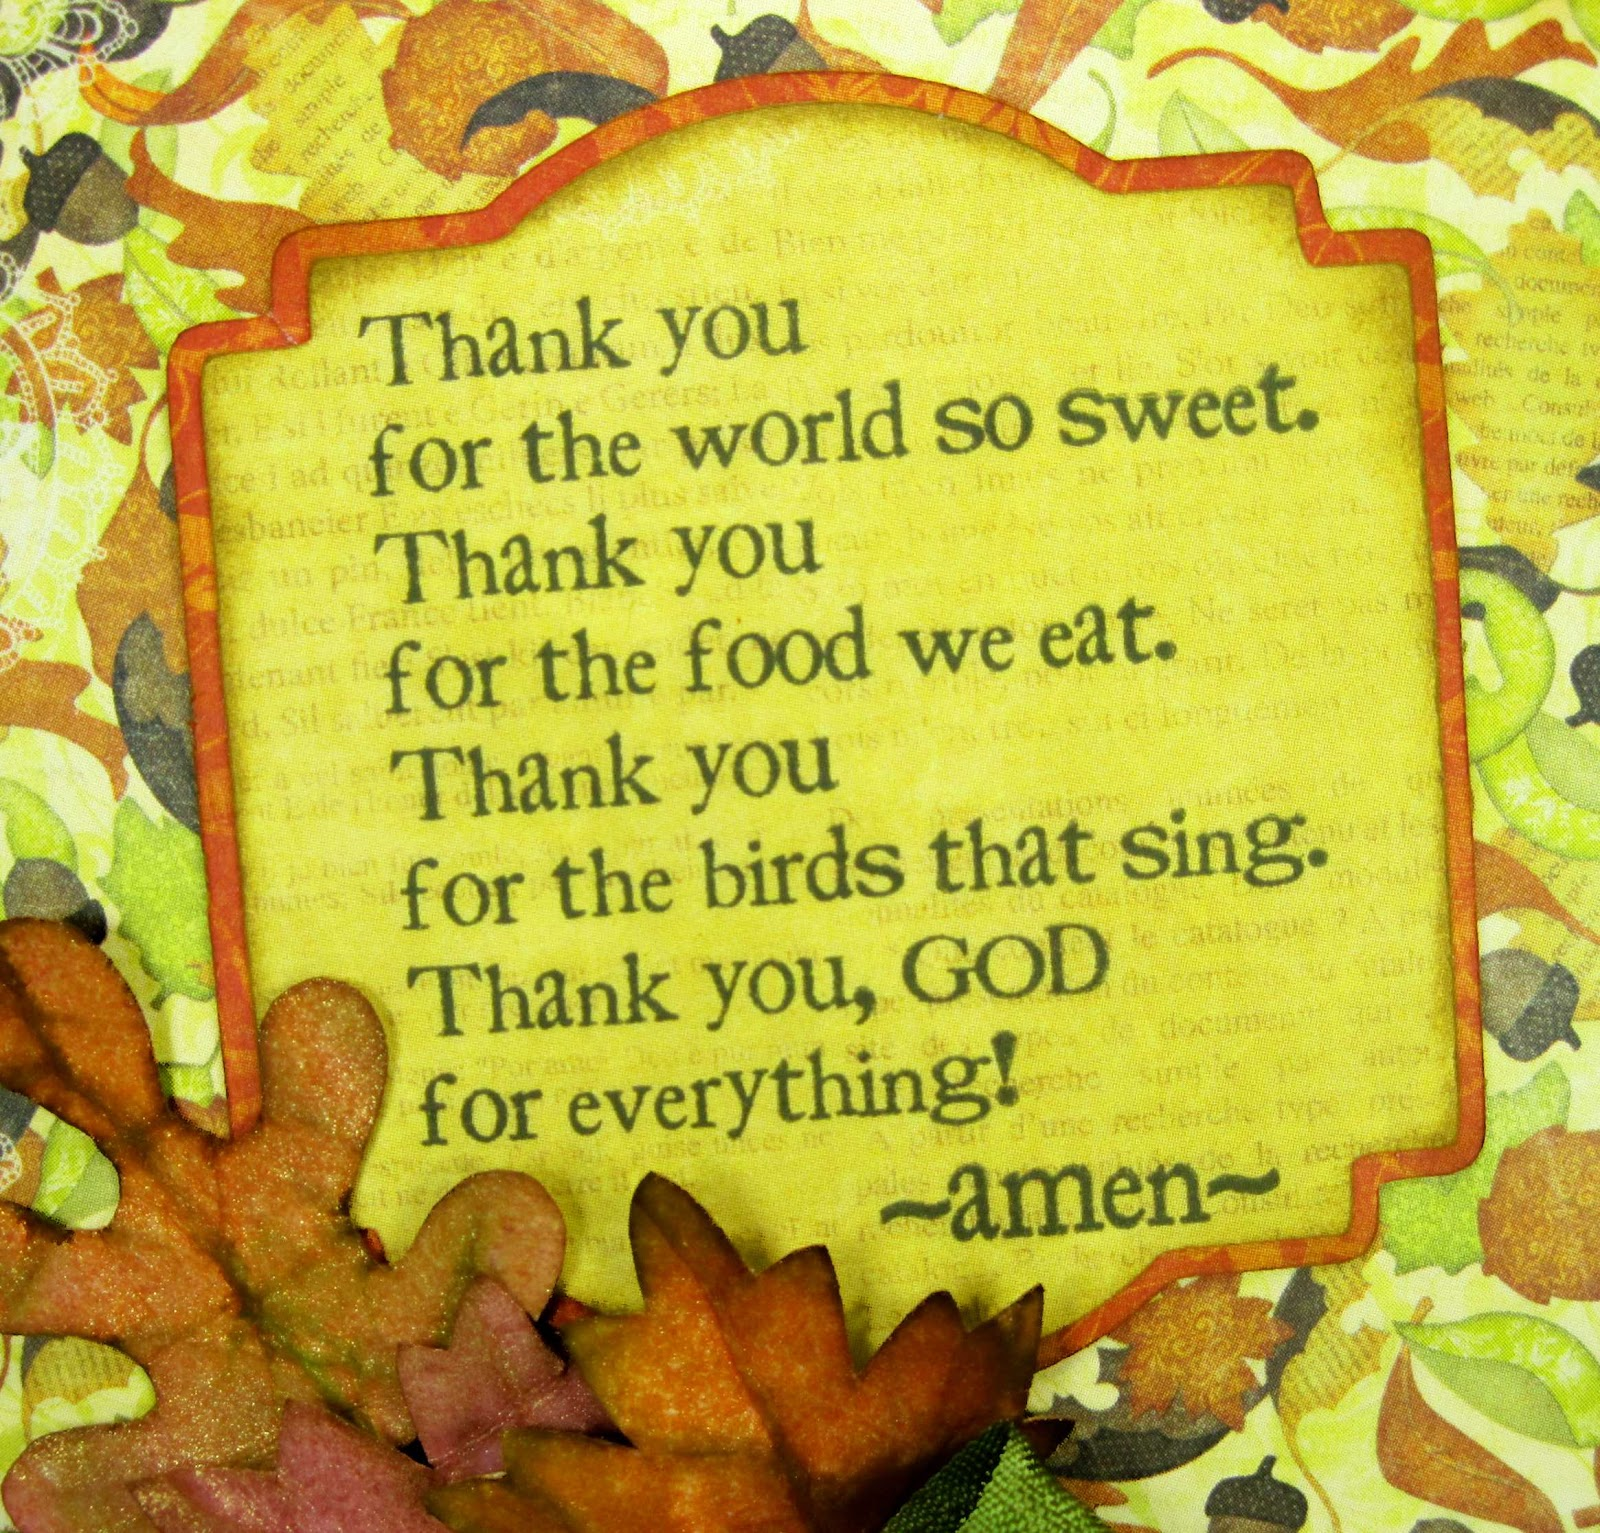 """ Thank You For the World So Sweet. Thank You For The Food We Eat. Thank You For The Birds That Sing. Thank You, God For Everything "" - Amen"